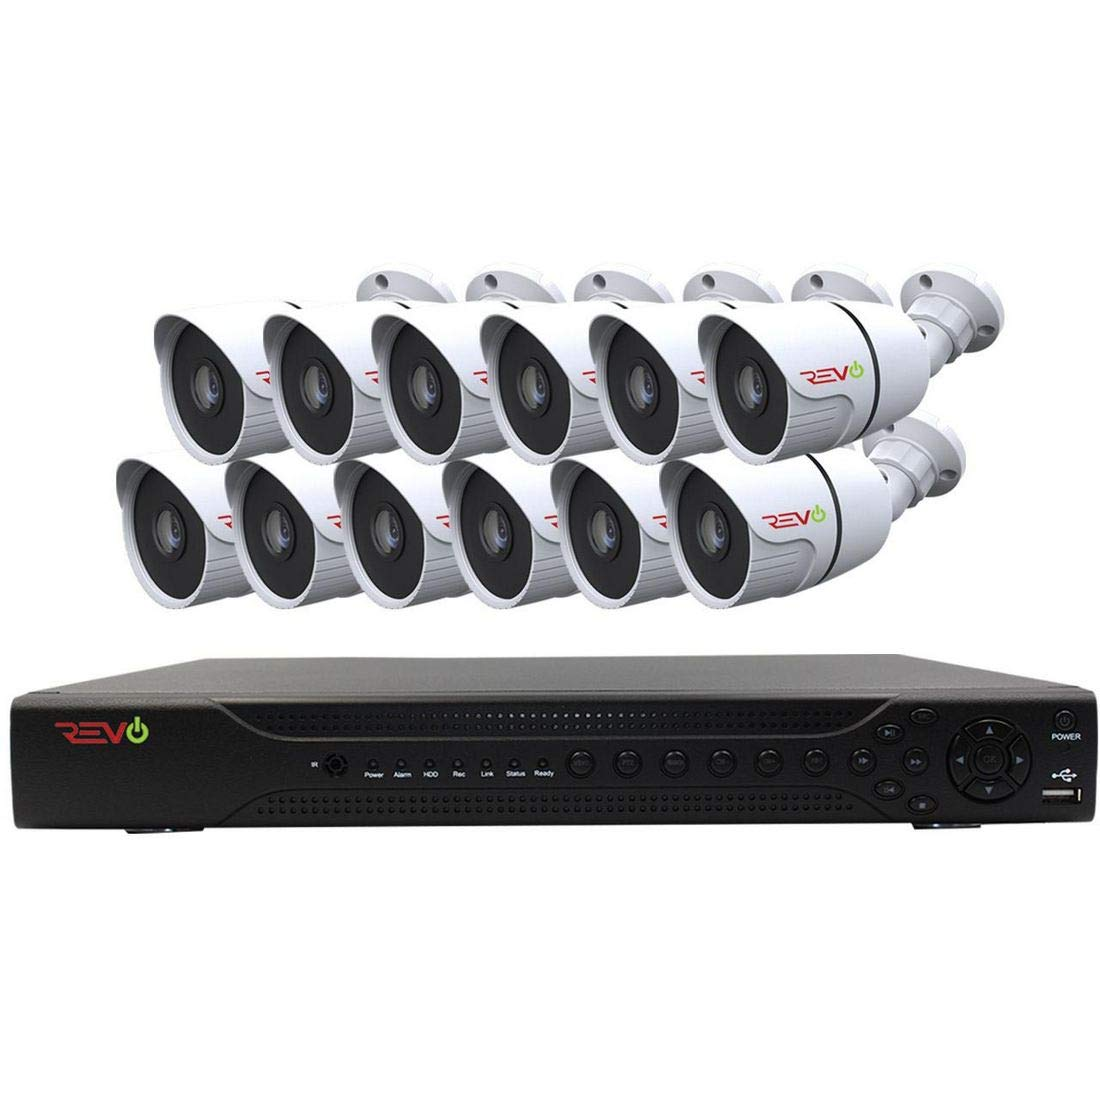 Revo America AeroHD 16Ch. 4MP DVR, 2TB HDD Video Security System, 12 x 1080p IR Bullet Cameras Indoor Outdoor – Remote Access via Smart Phone, Tablet, PC MAC